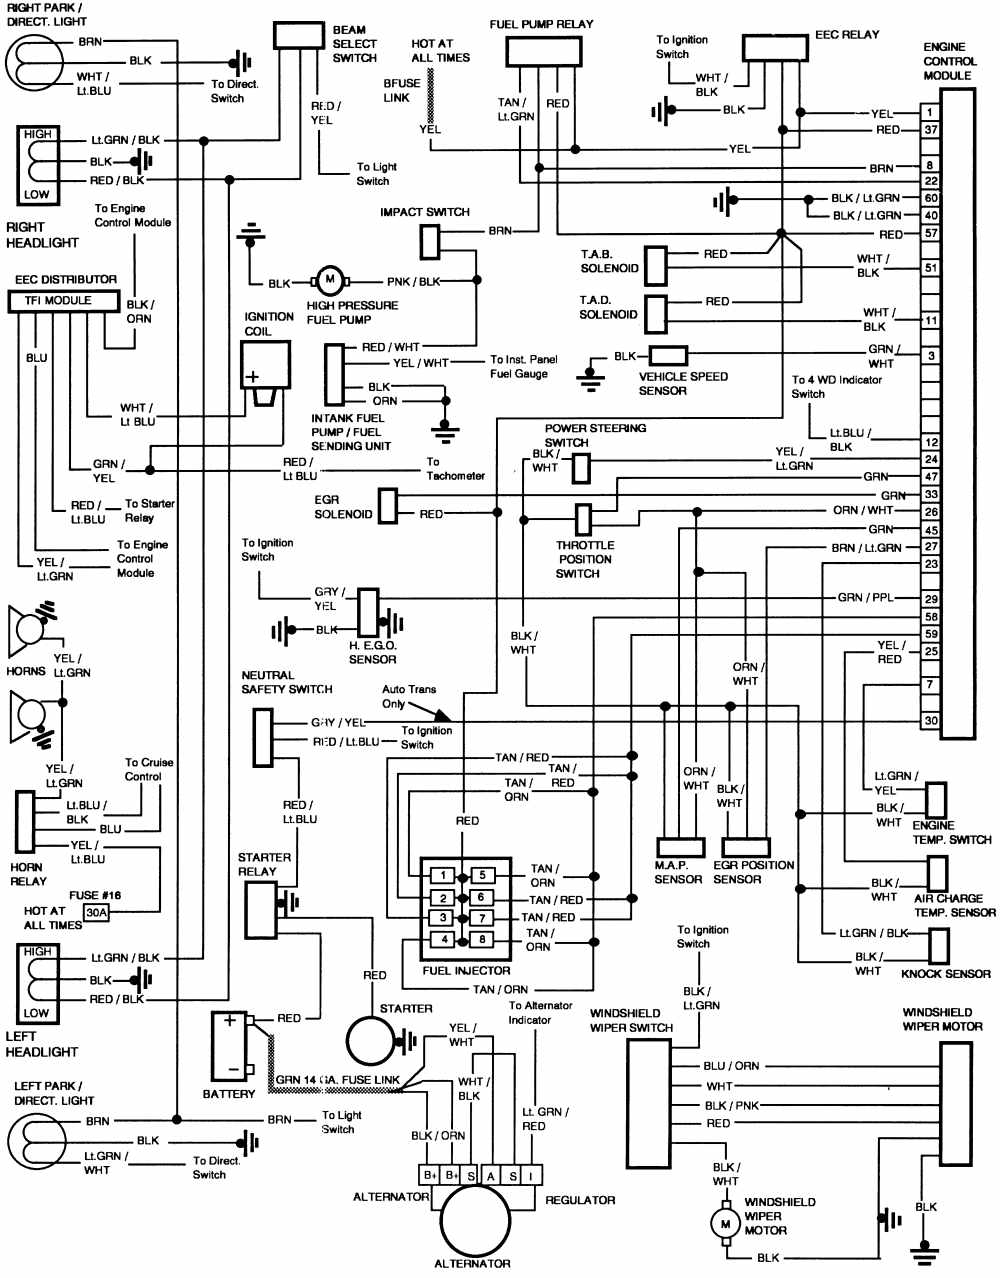 Ford F250 1986 Engine Control Module Wiring Diagram | All about Wiring Diagrams